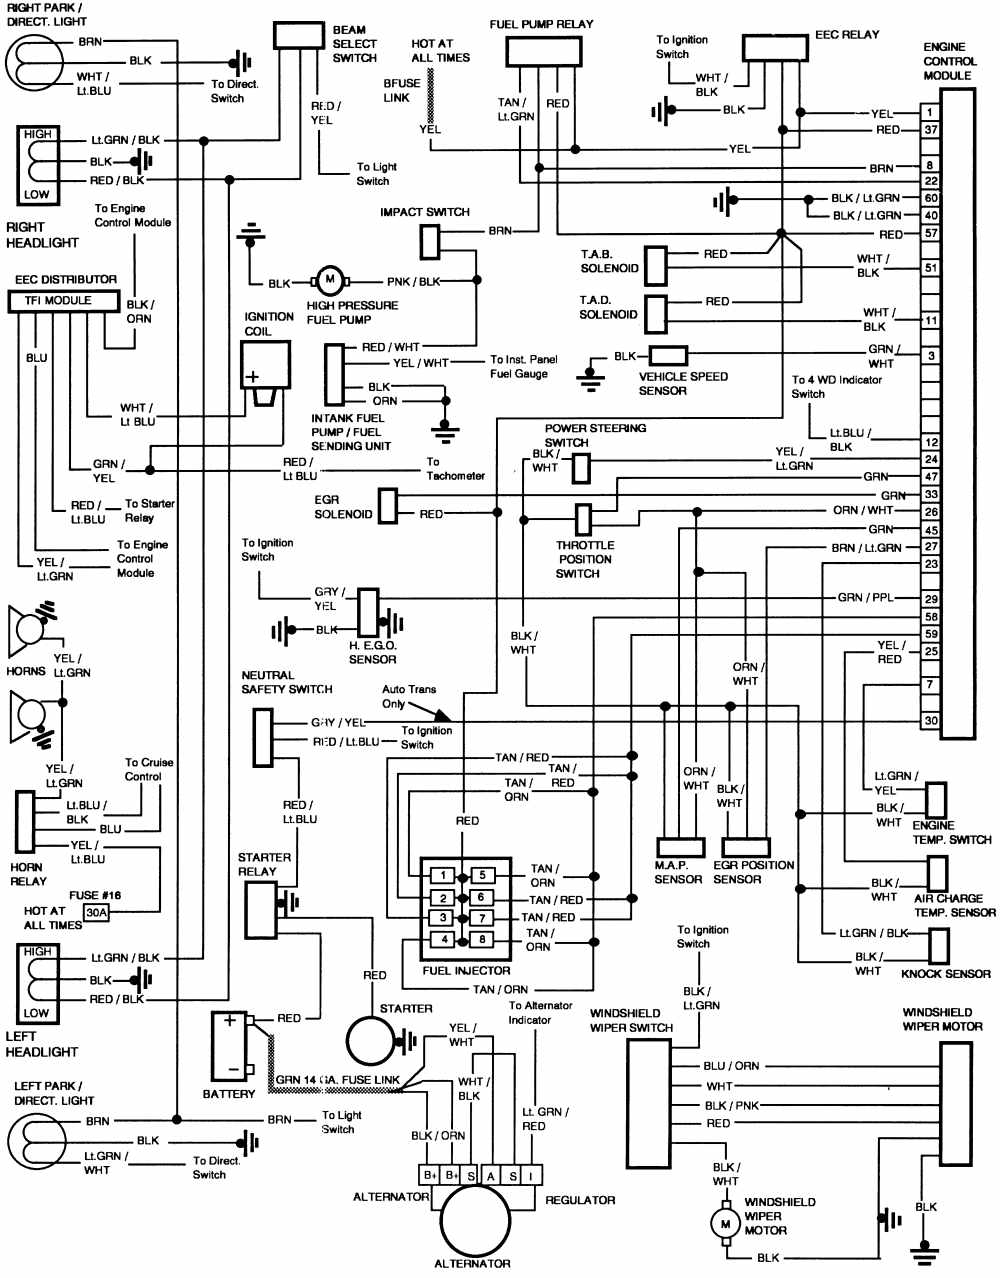 Ford F250 1986 Engine Control Module Wiring Diagram | All about Wiring Diagrams